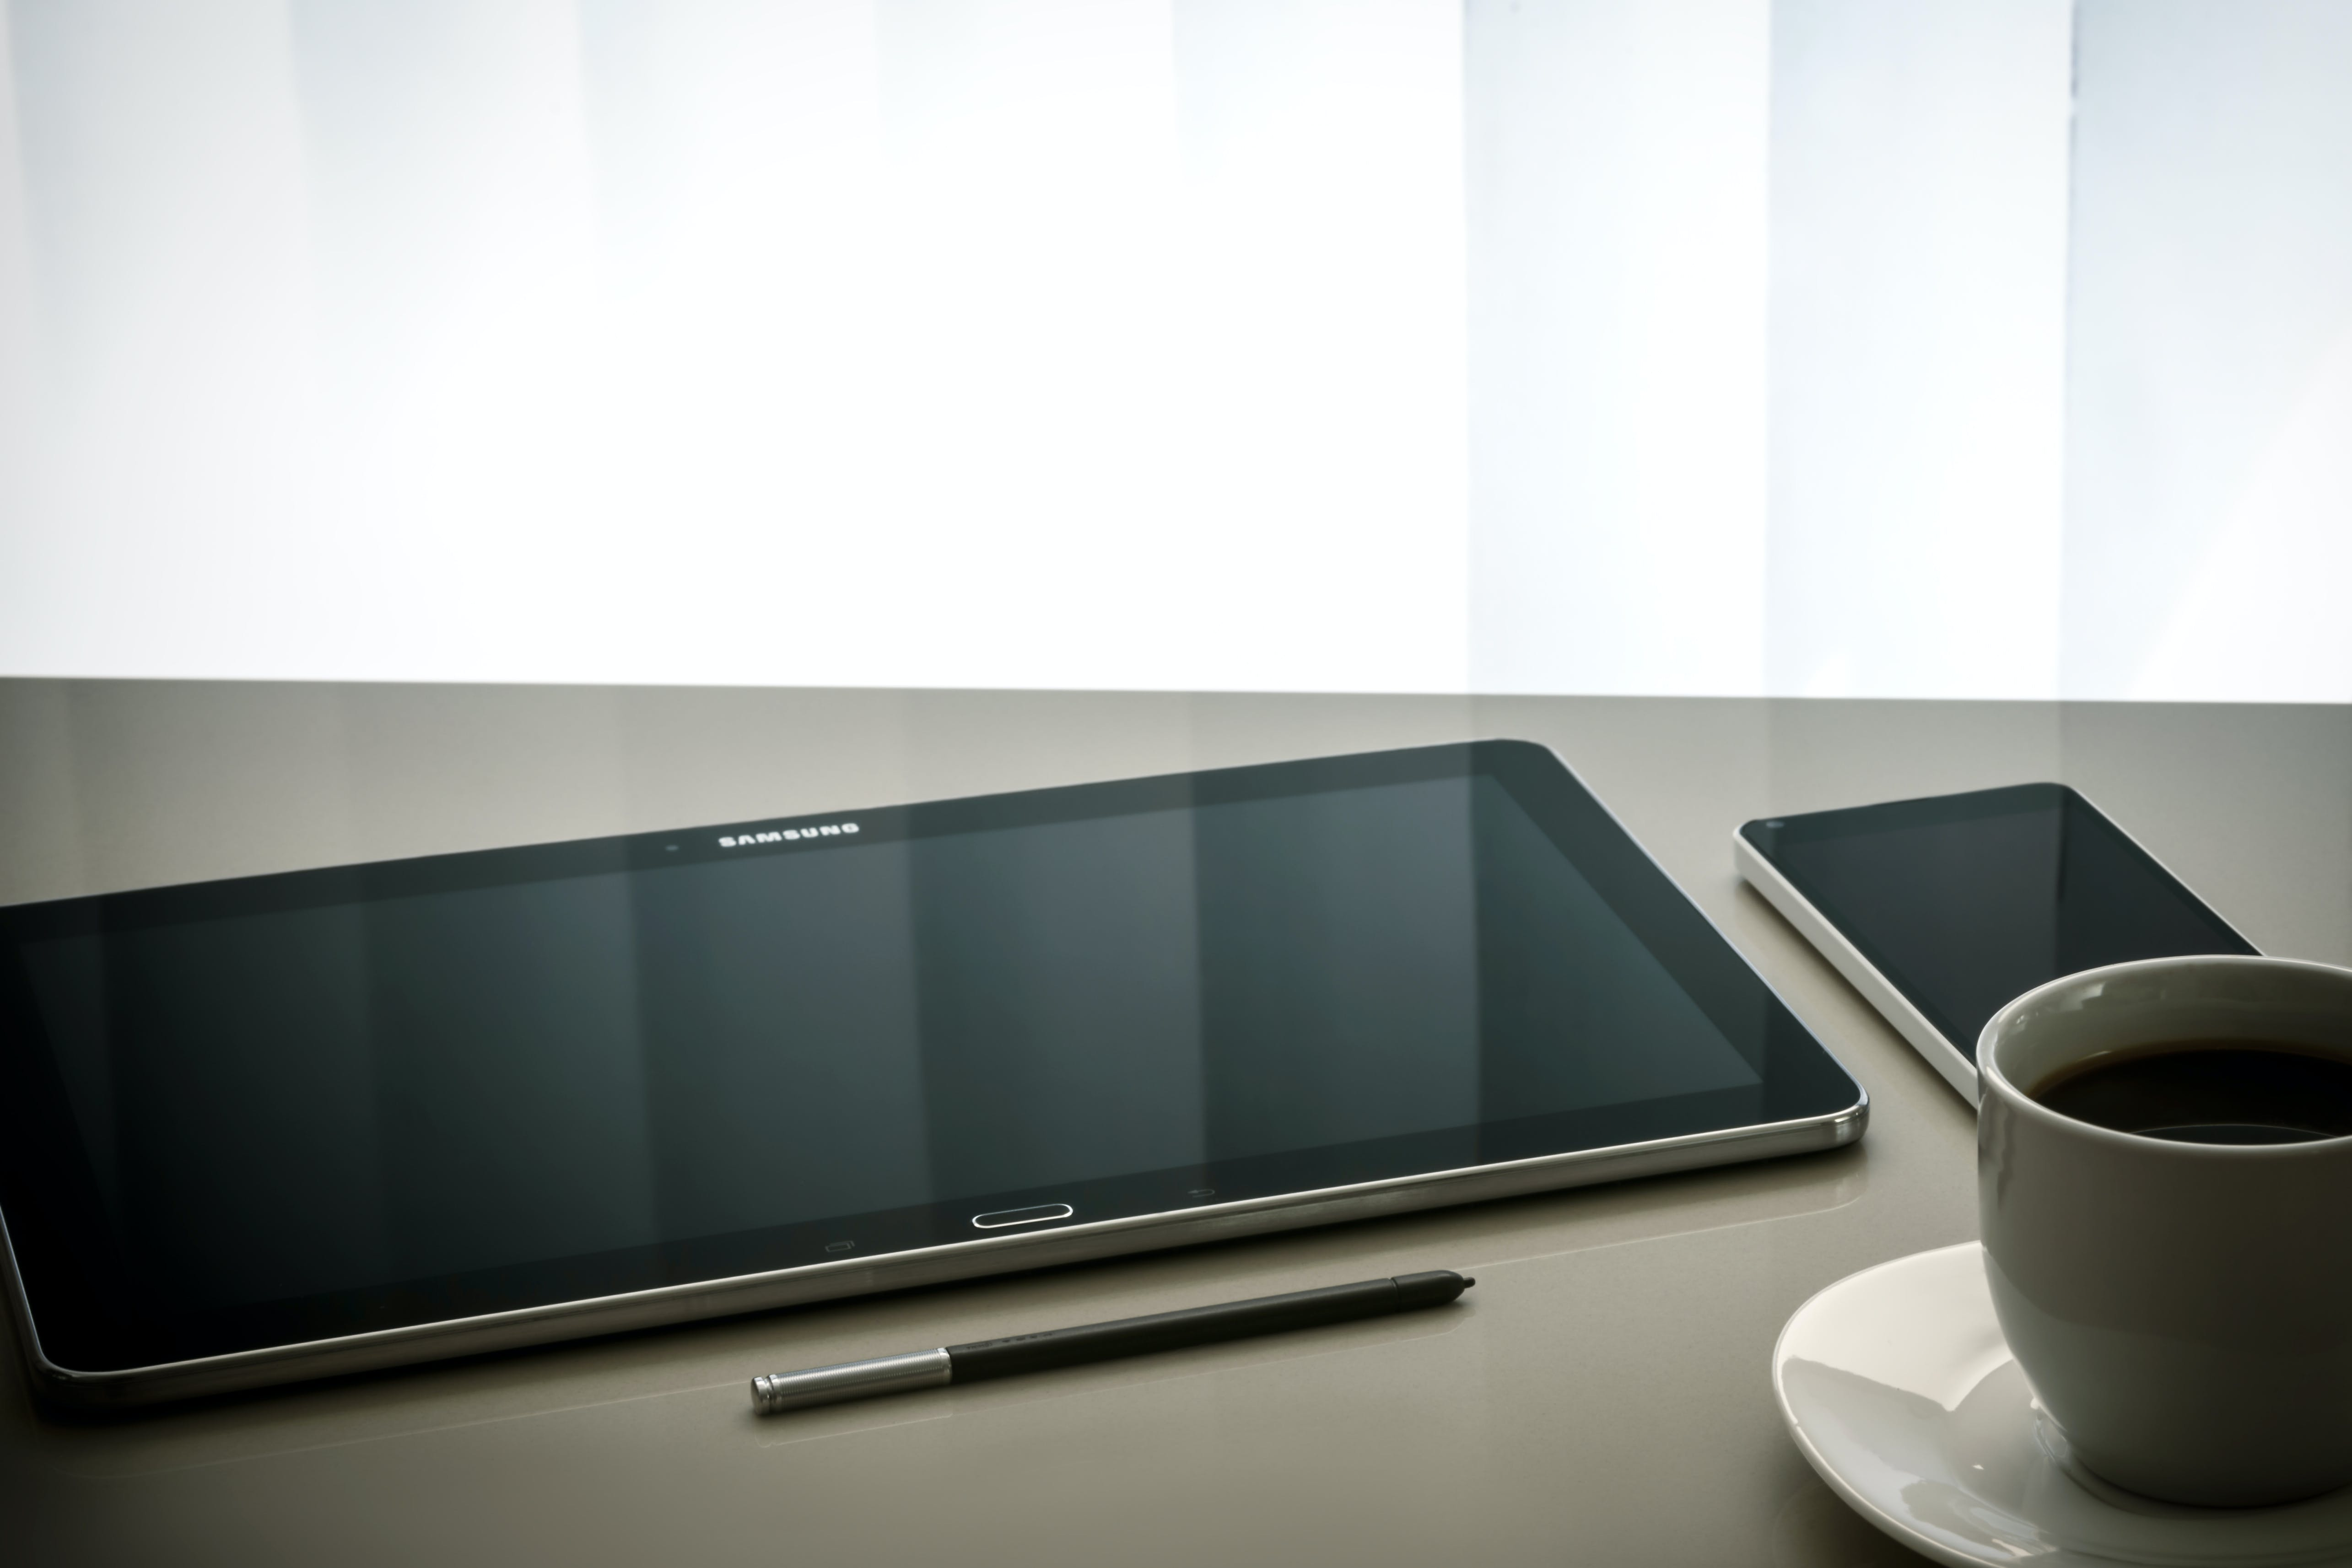 Black Samsung Android Tablet Computer Beside Stylus Pen